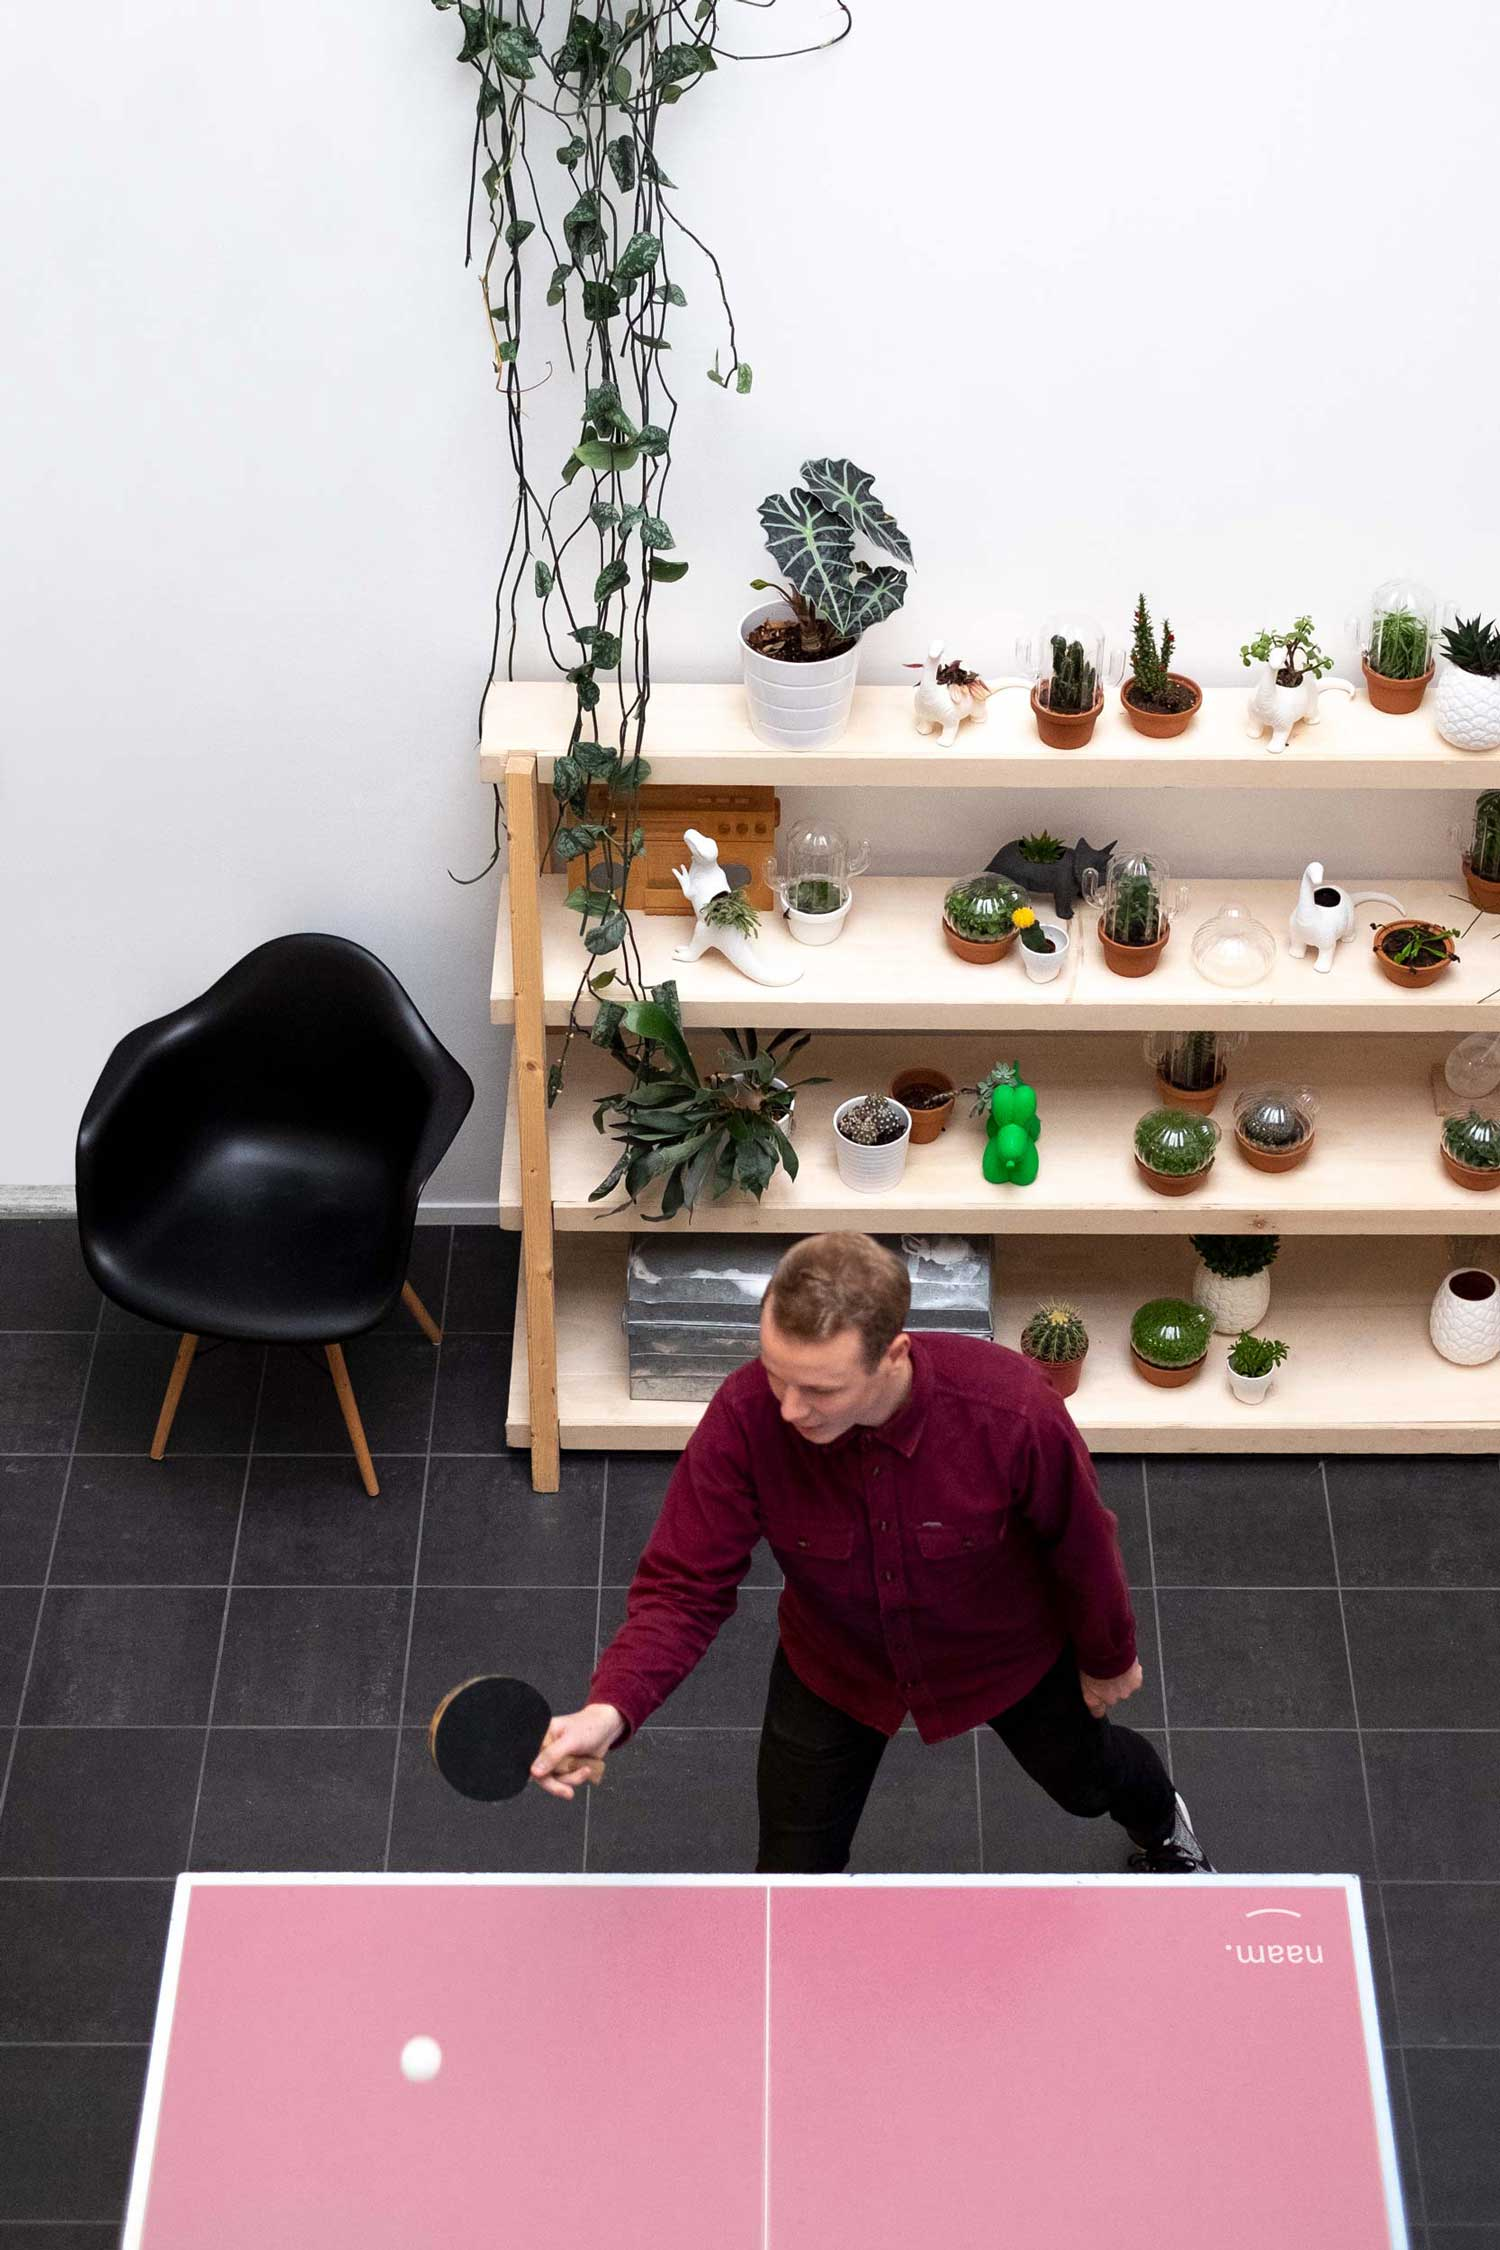 Playing ping pong on a pink table and a beautiful shelve with cacti and Eames chair at the Naam office